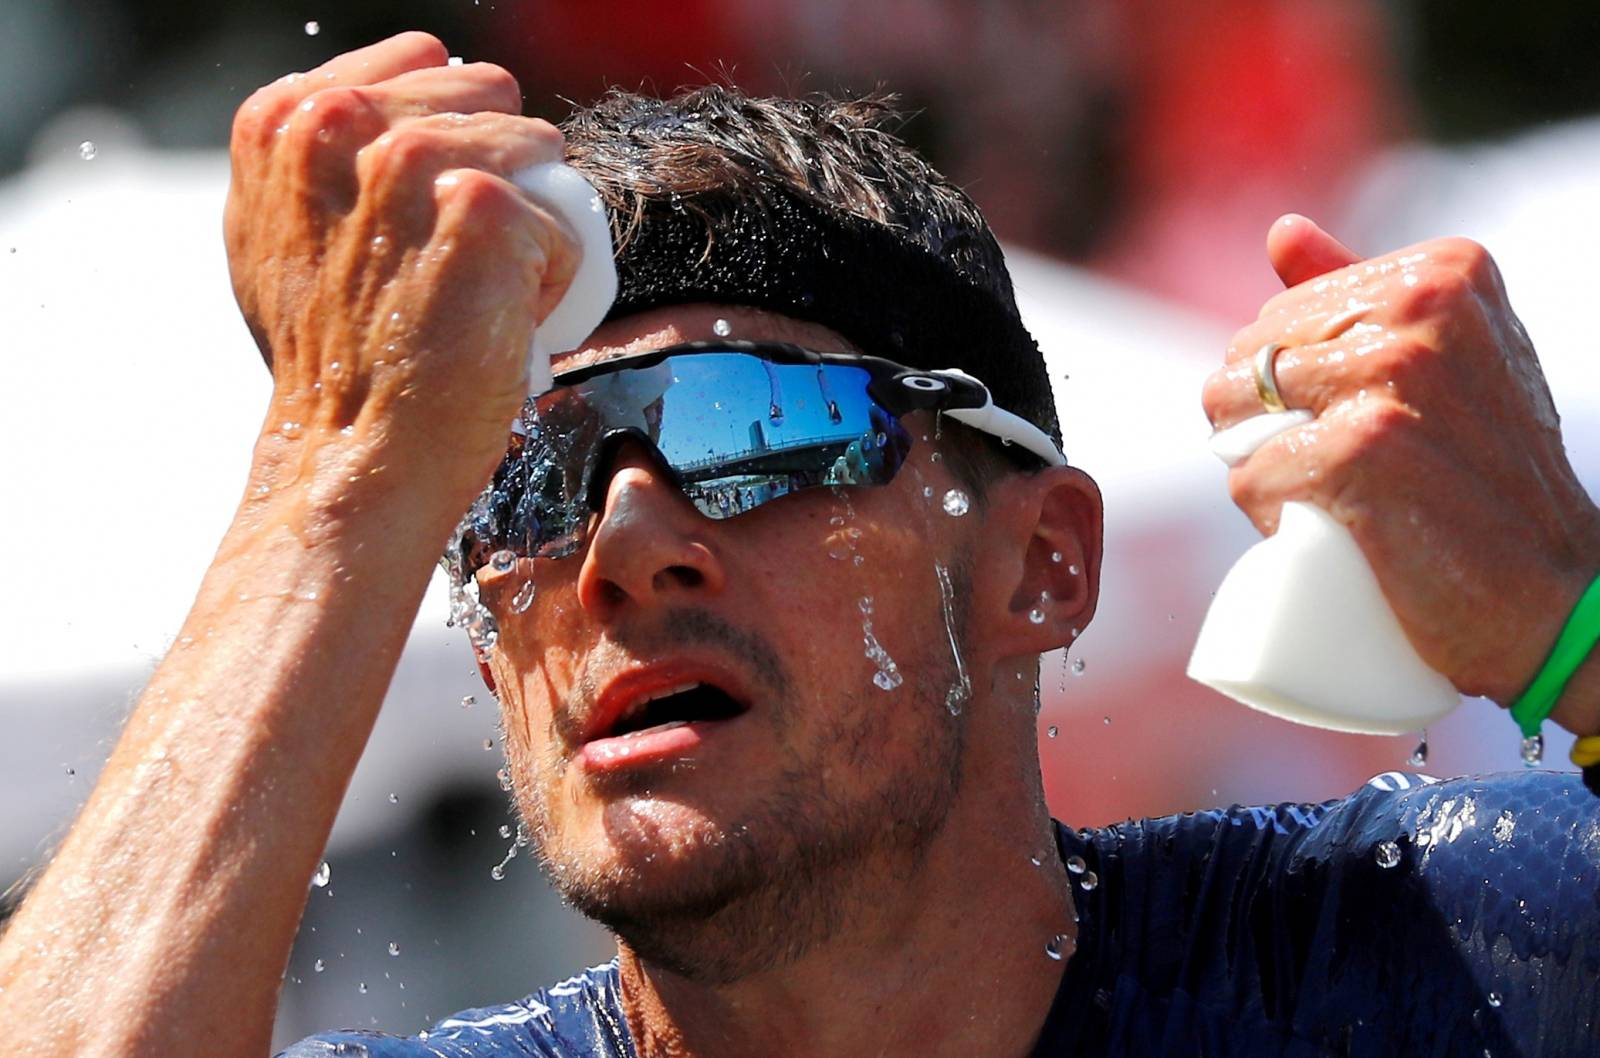 FILE PHOTO: Triathlete Jan Frodeno of Germany tries to cool down on his way to win the Ironman triathlon European Championships in Frankfurt